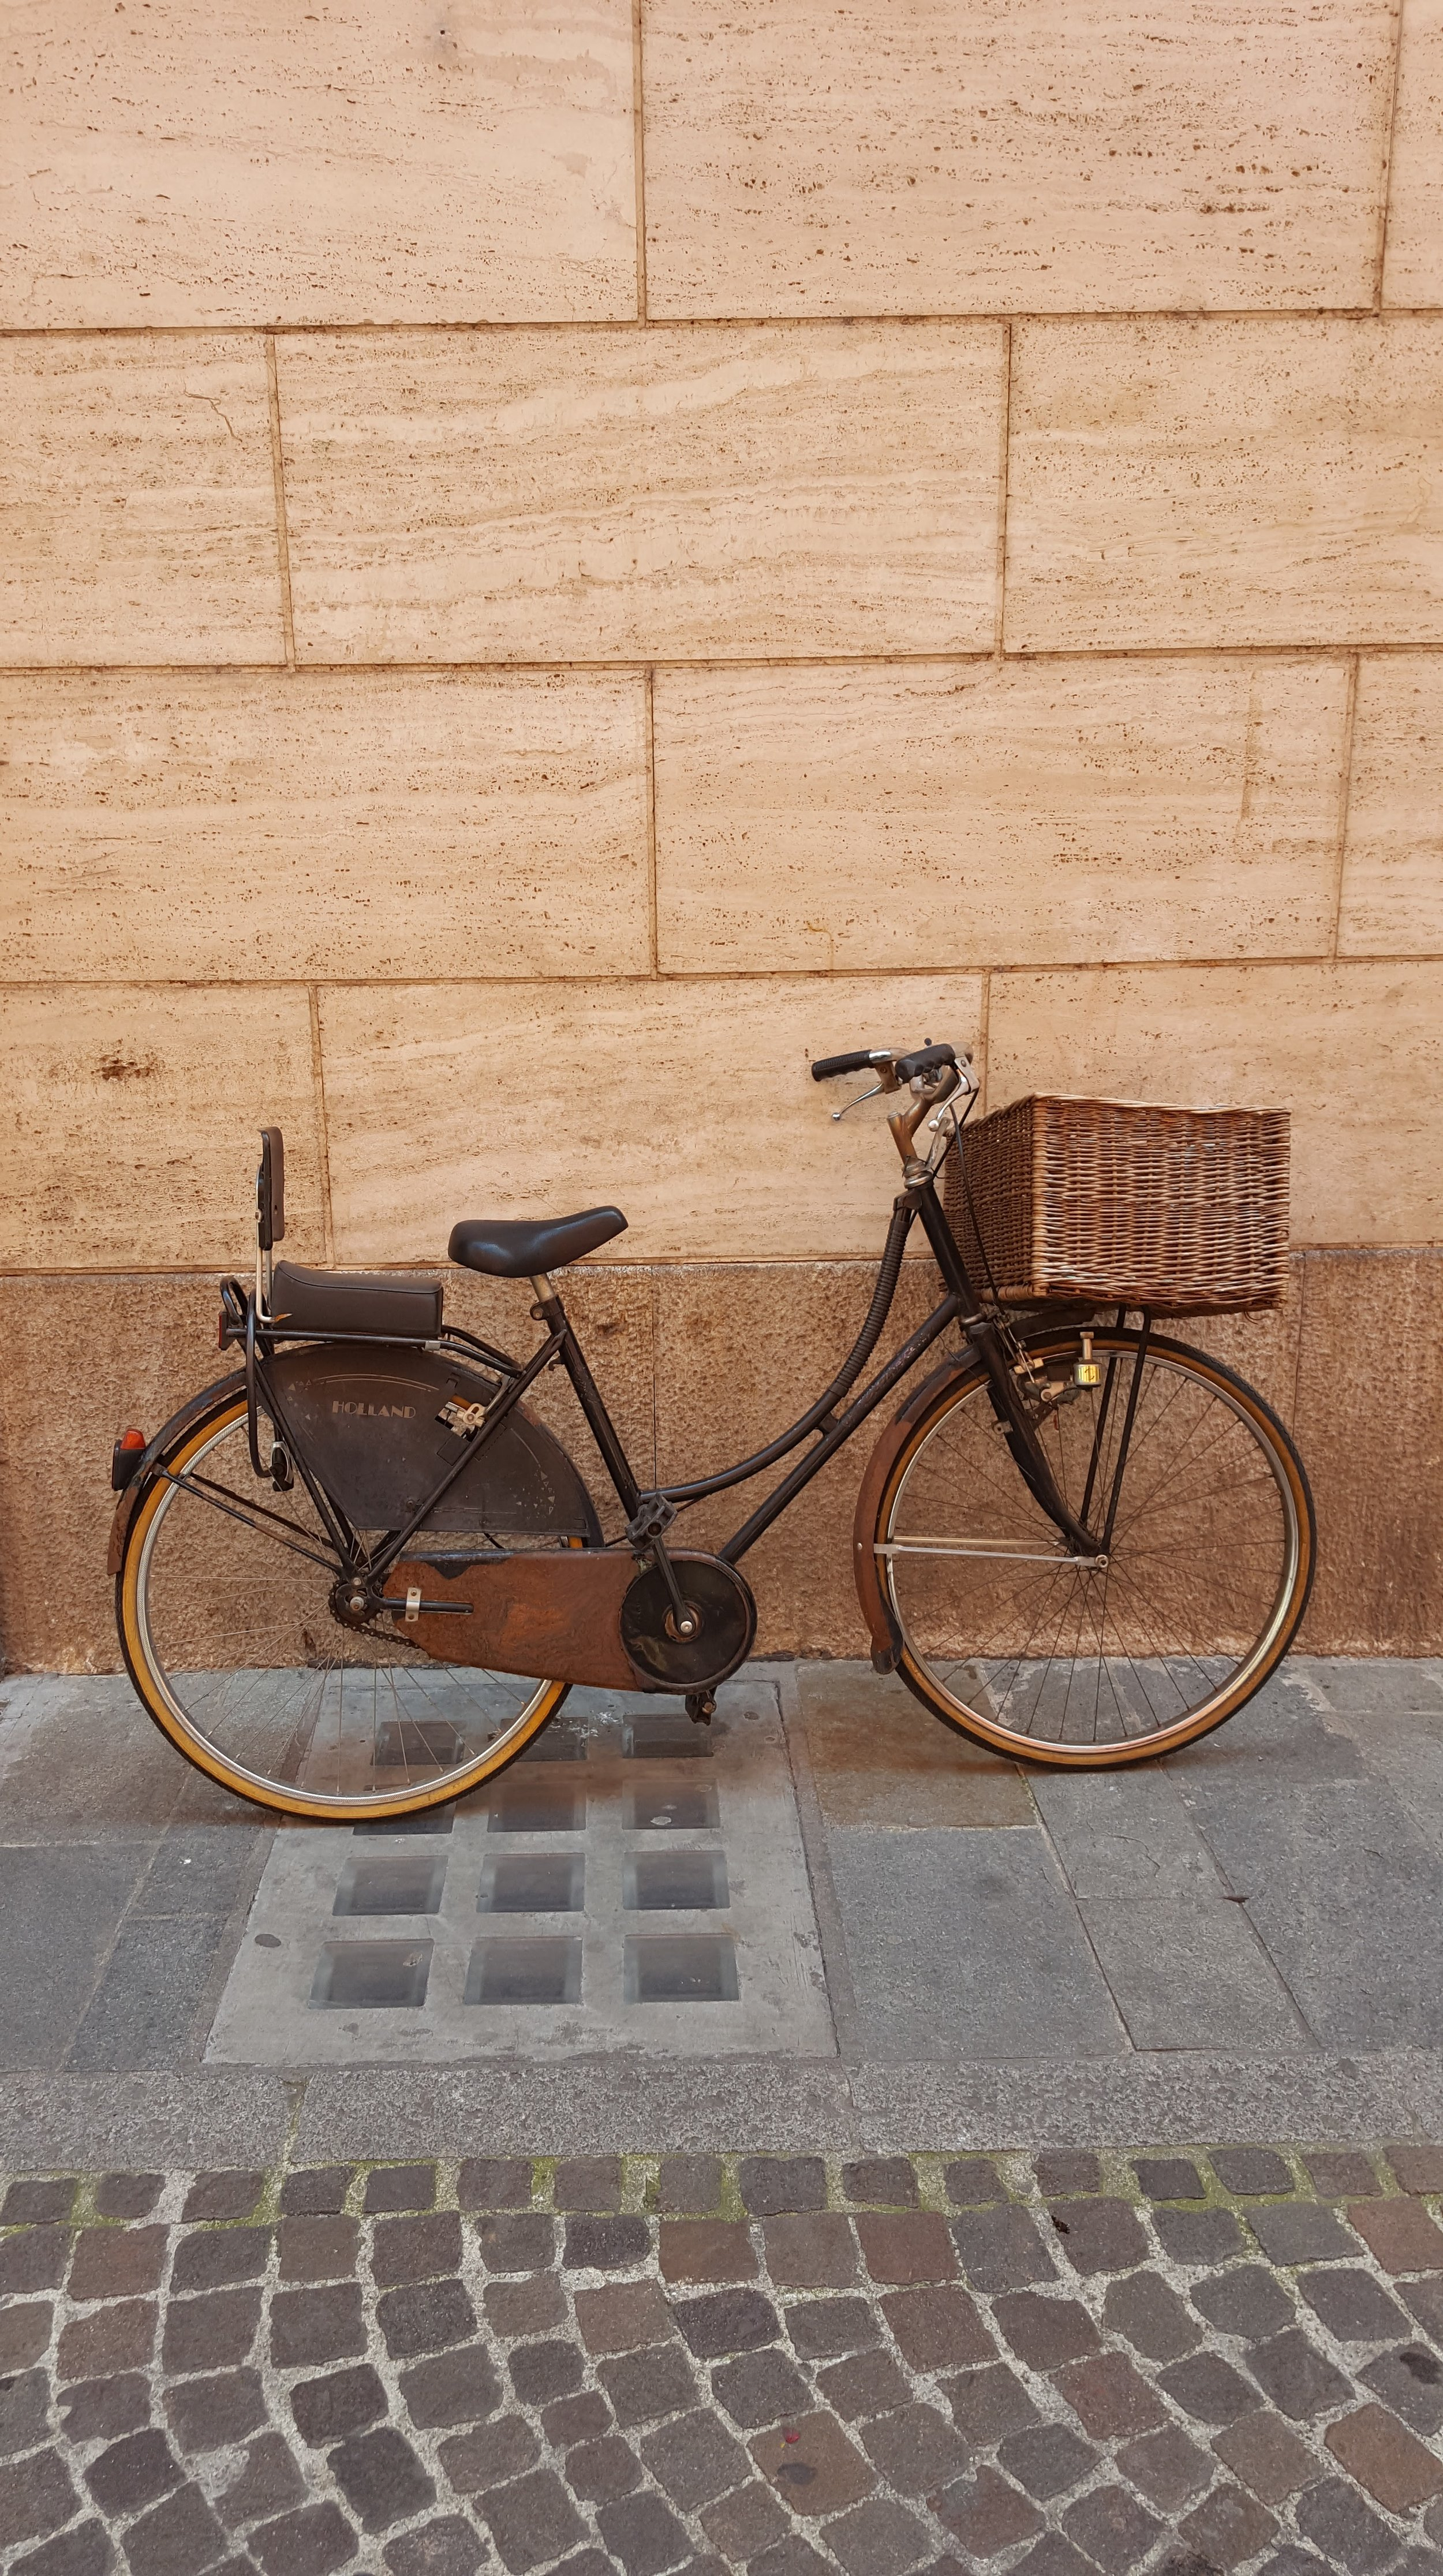 Bici everywhere in Parma!